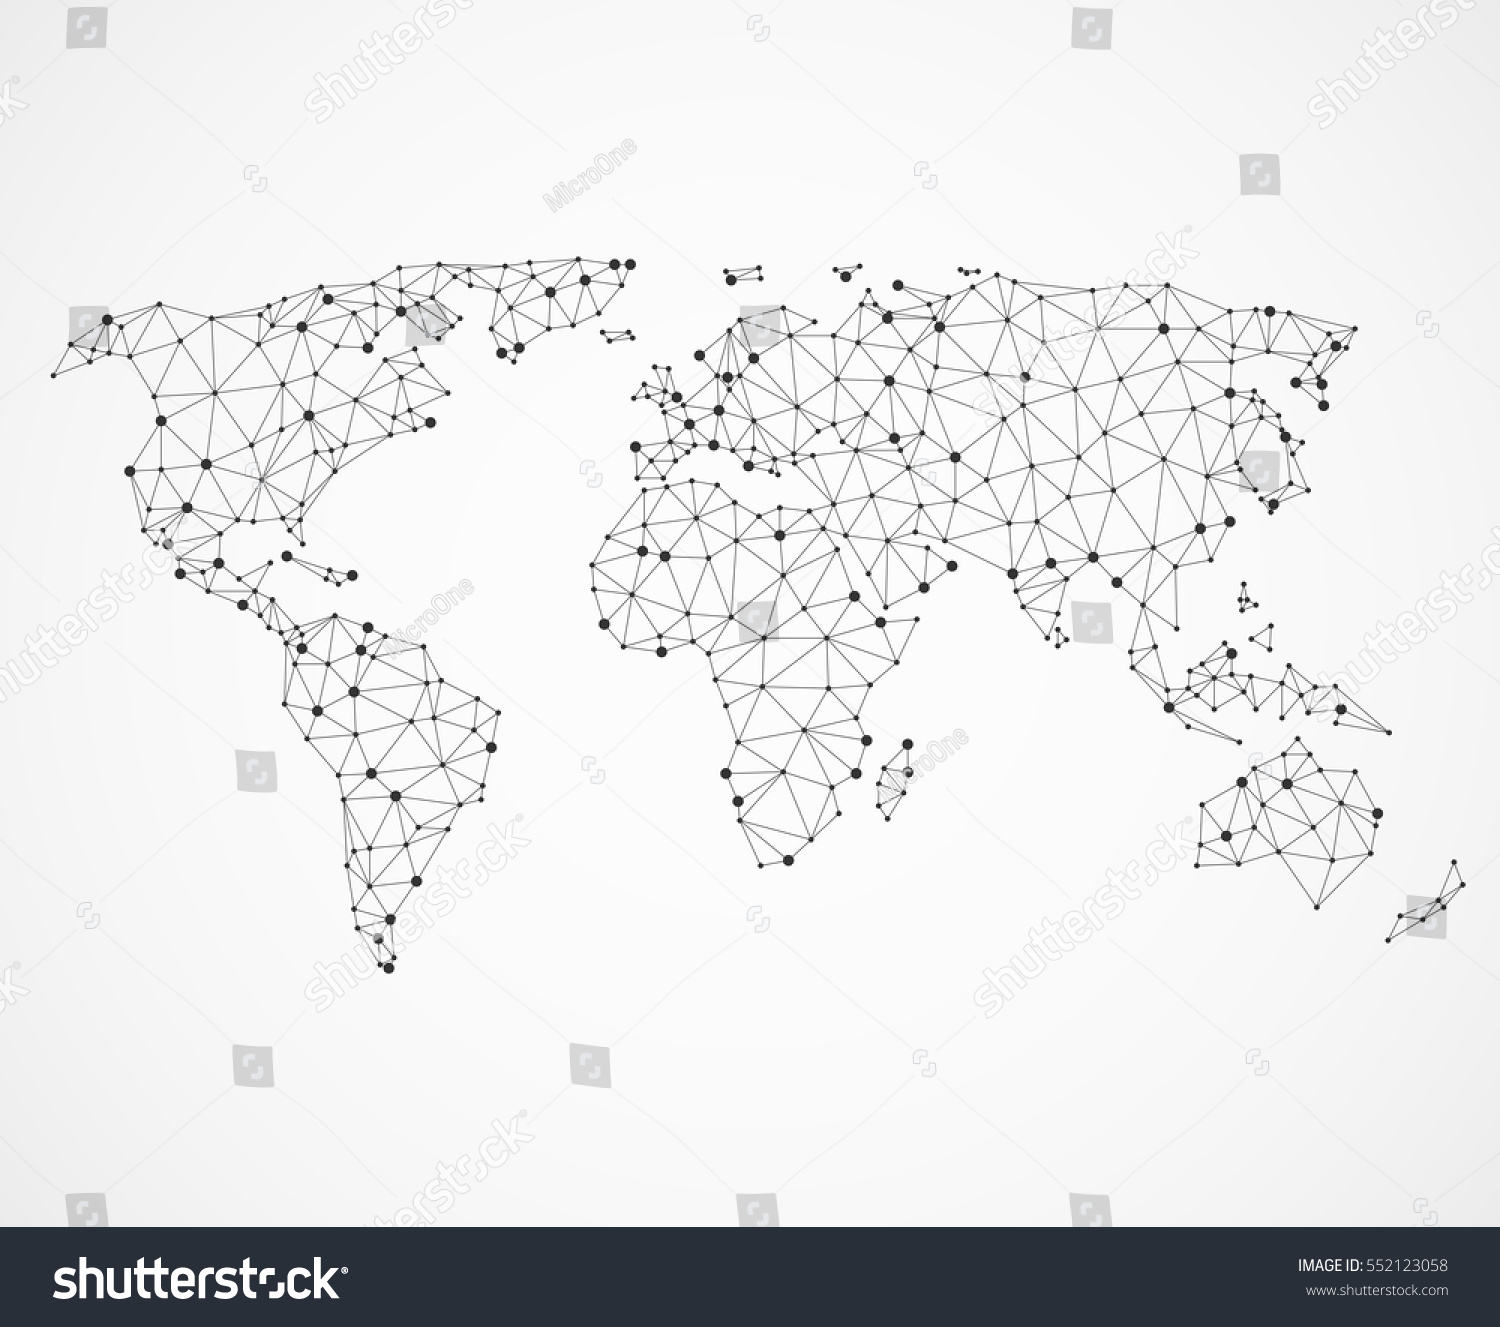 Networking world map texture low poly stock vector 552123058 networking world map texture low poly earth map vector global communication concept illustration gumiabroncs Images